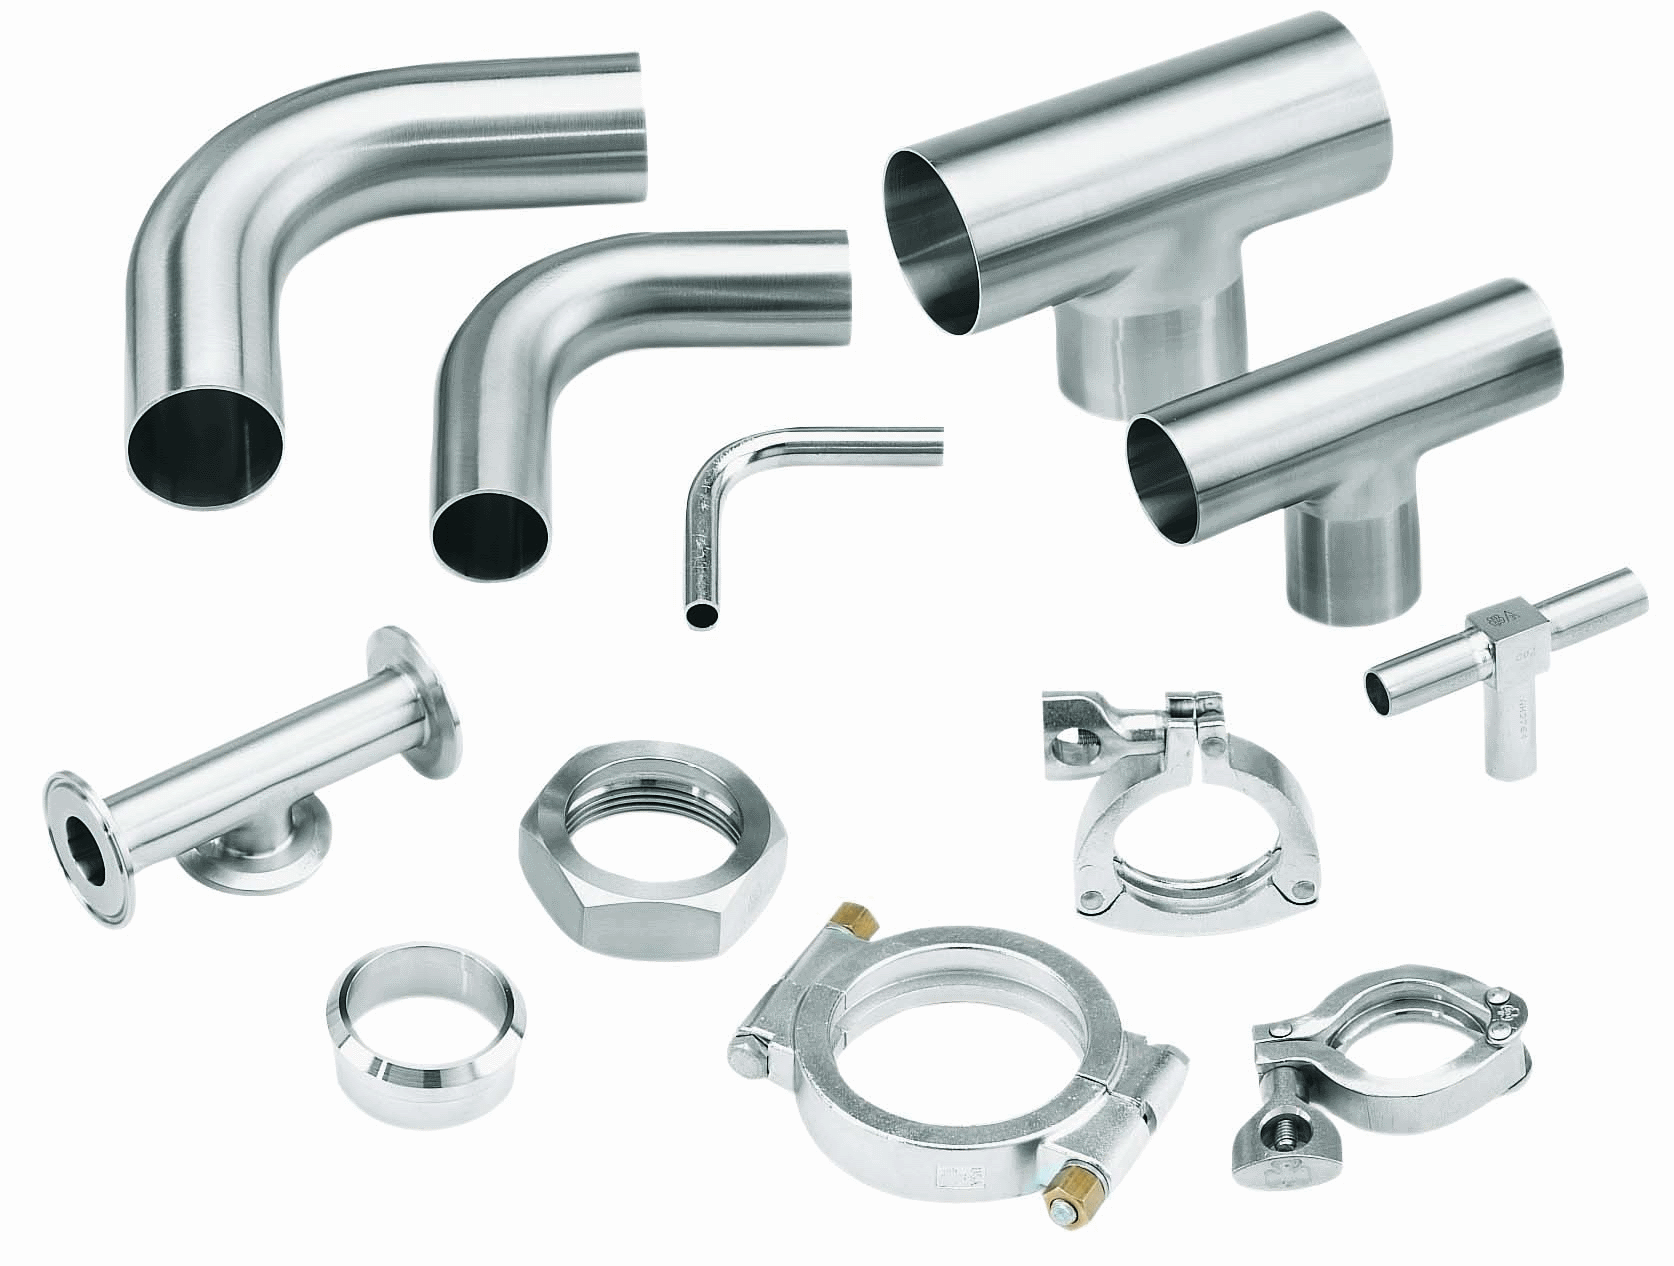 Cheap sanitary fittings find sanitary fittings deals on